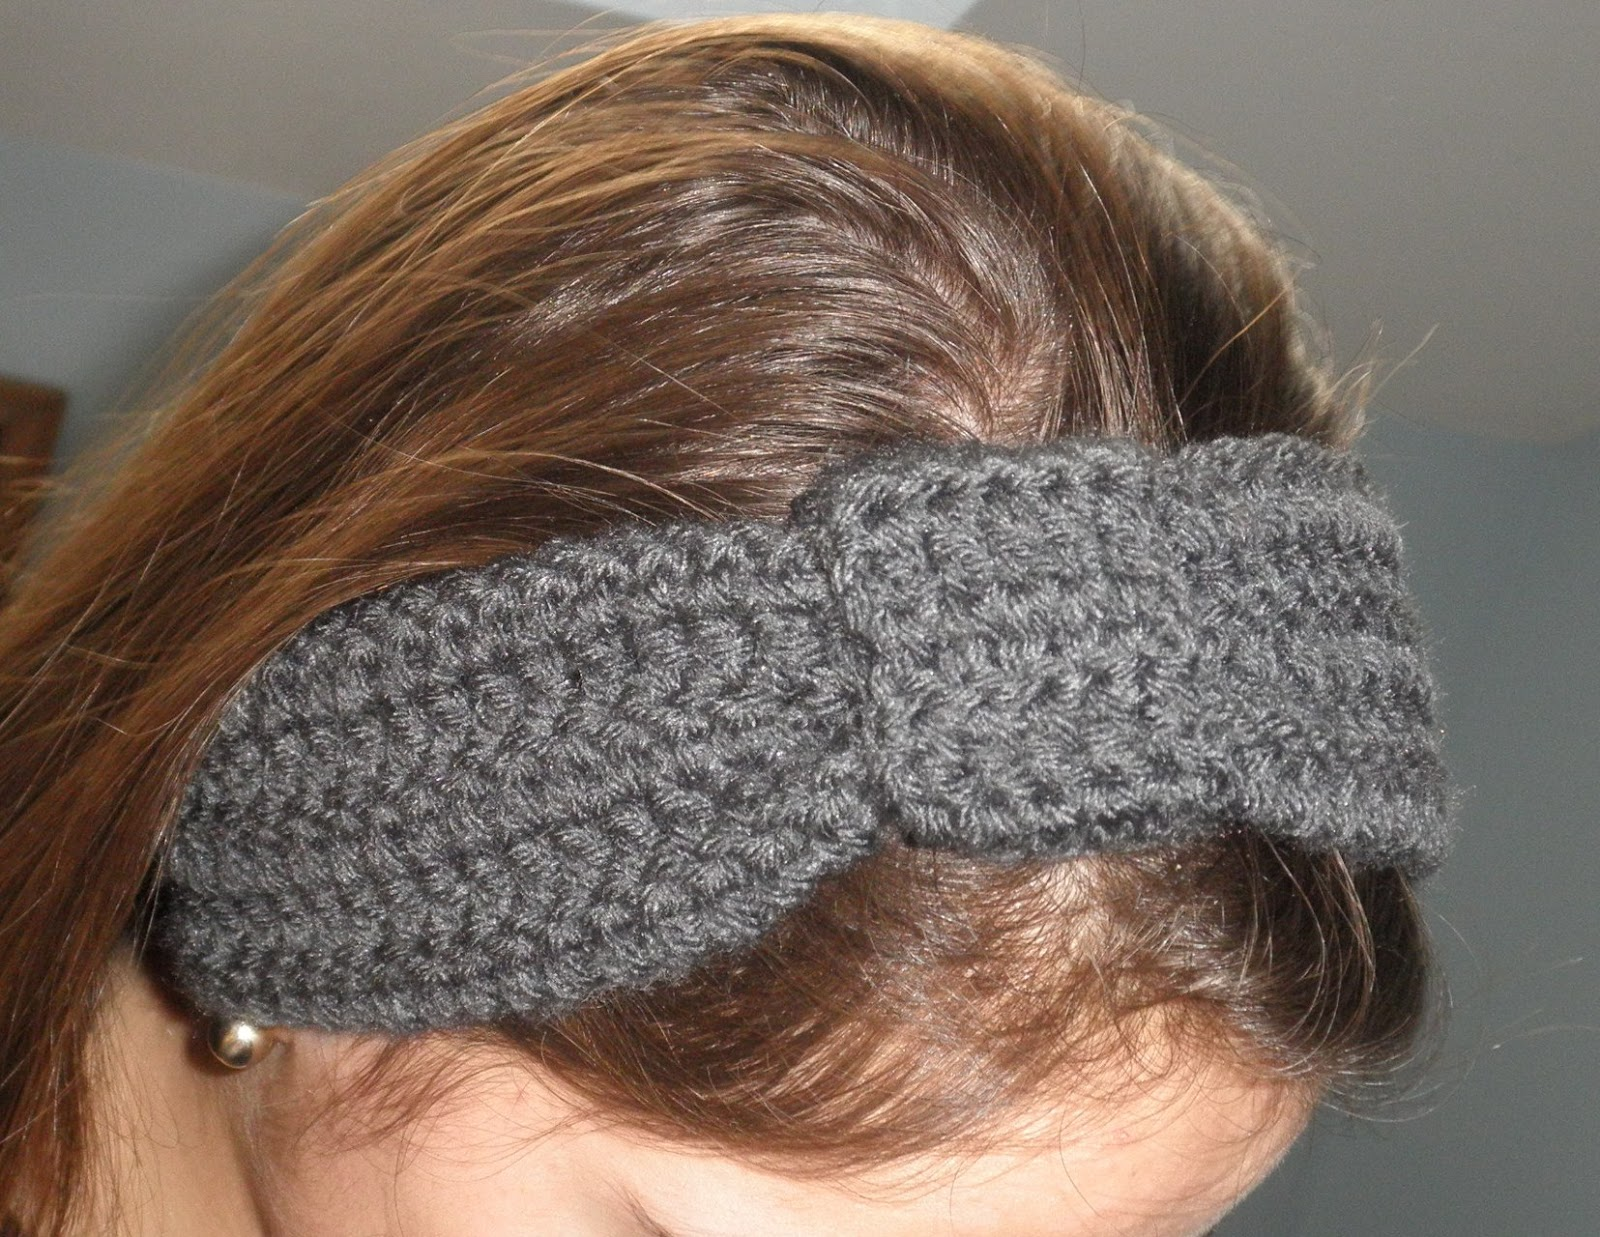 Free Crochet Pattern For Knotted Headband : Sew Divertimento: Cute Crochet Knotted Headbands!